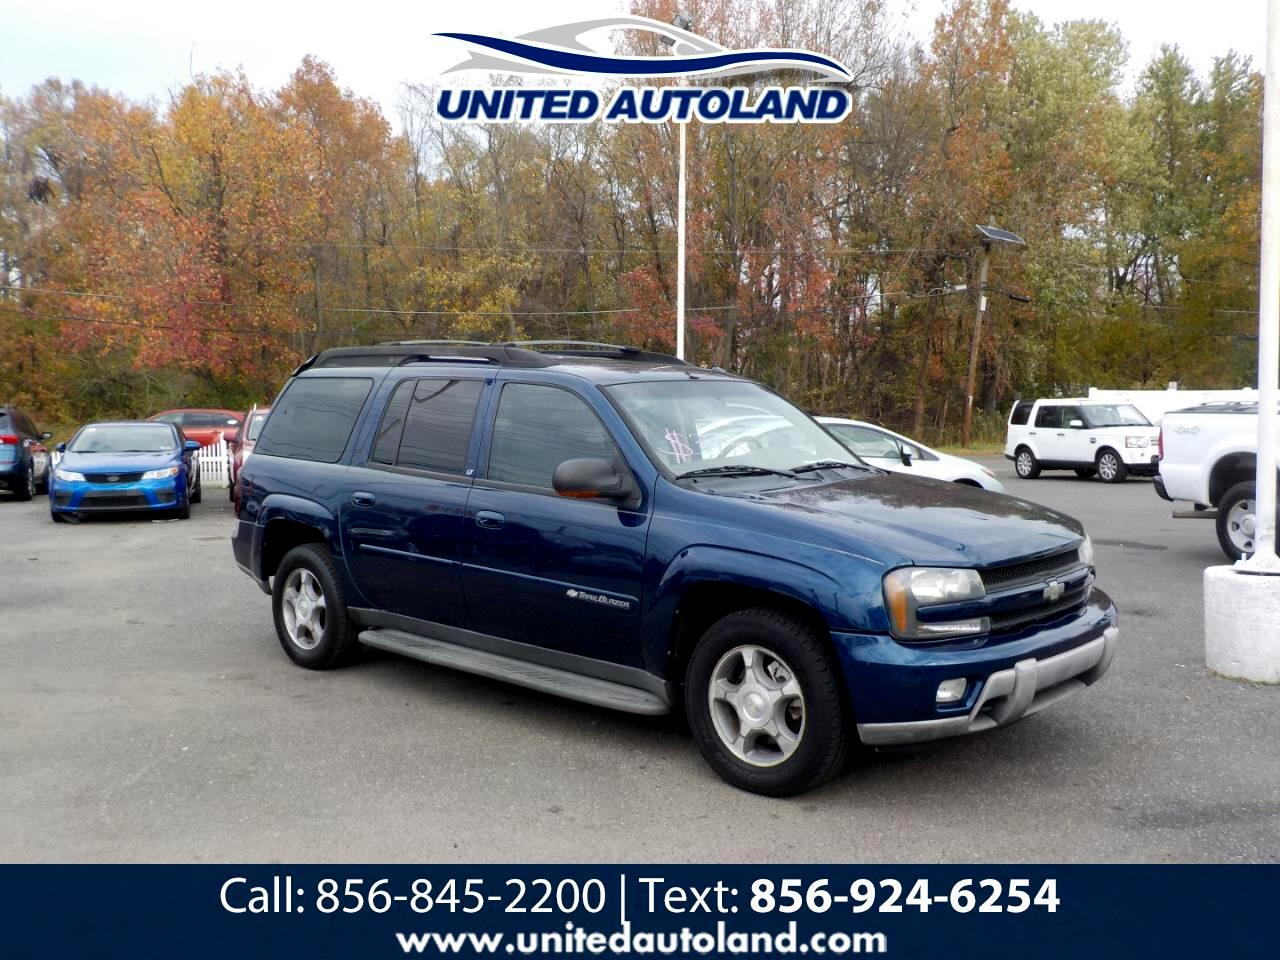 2004 Chevrolet TrailBlazer 4dr 4WD EXT LT